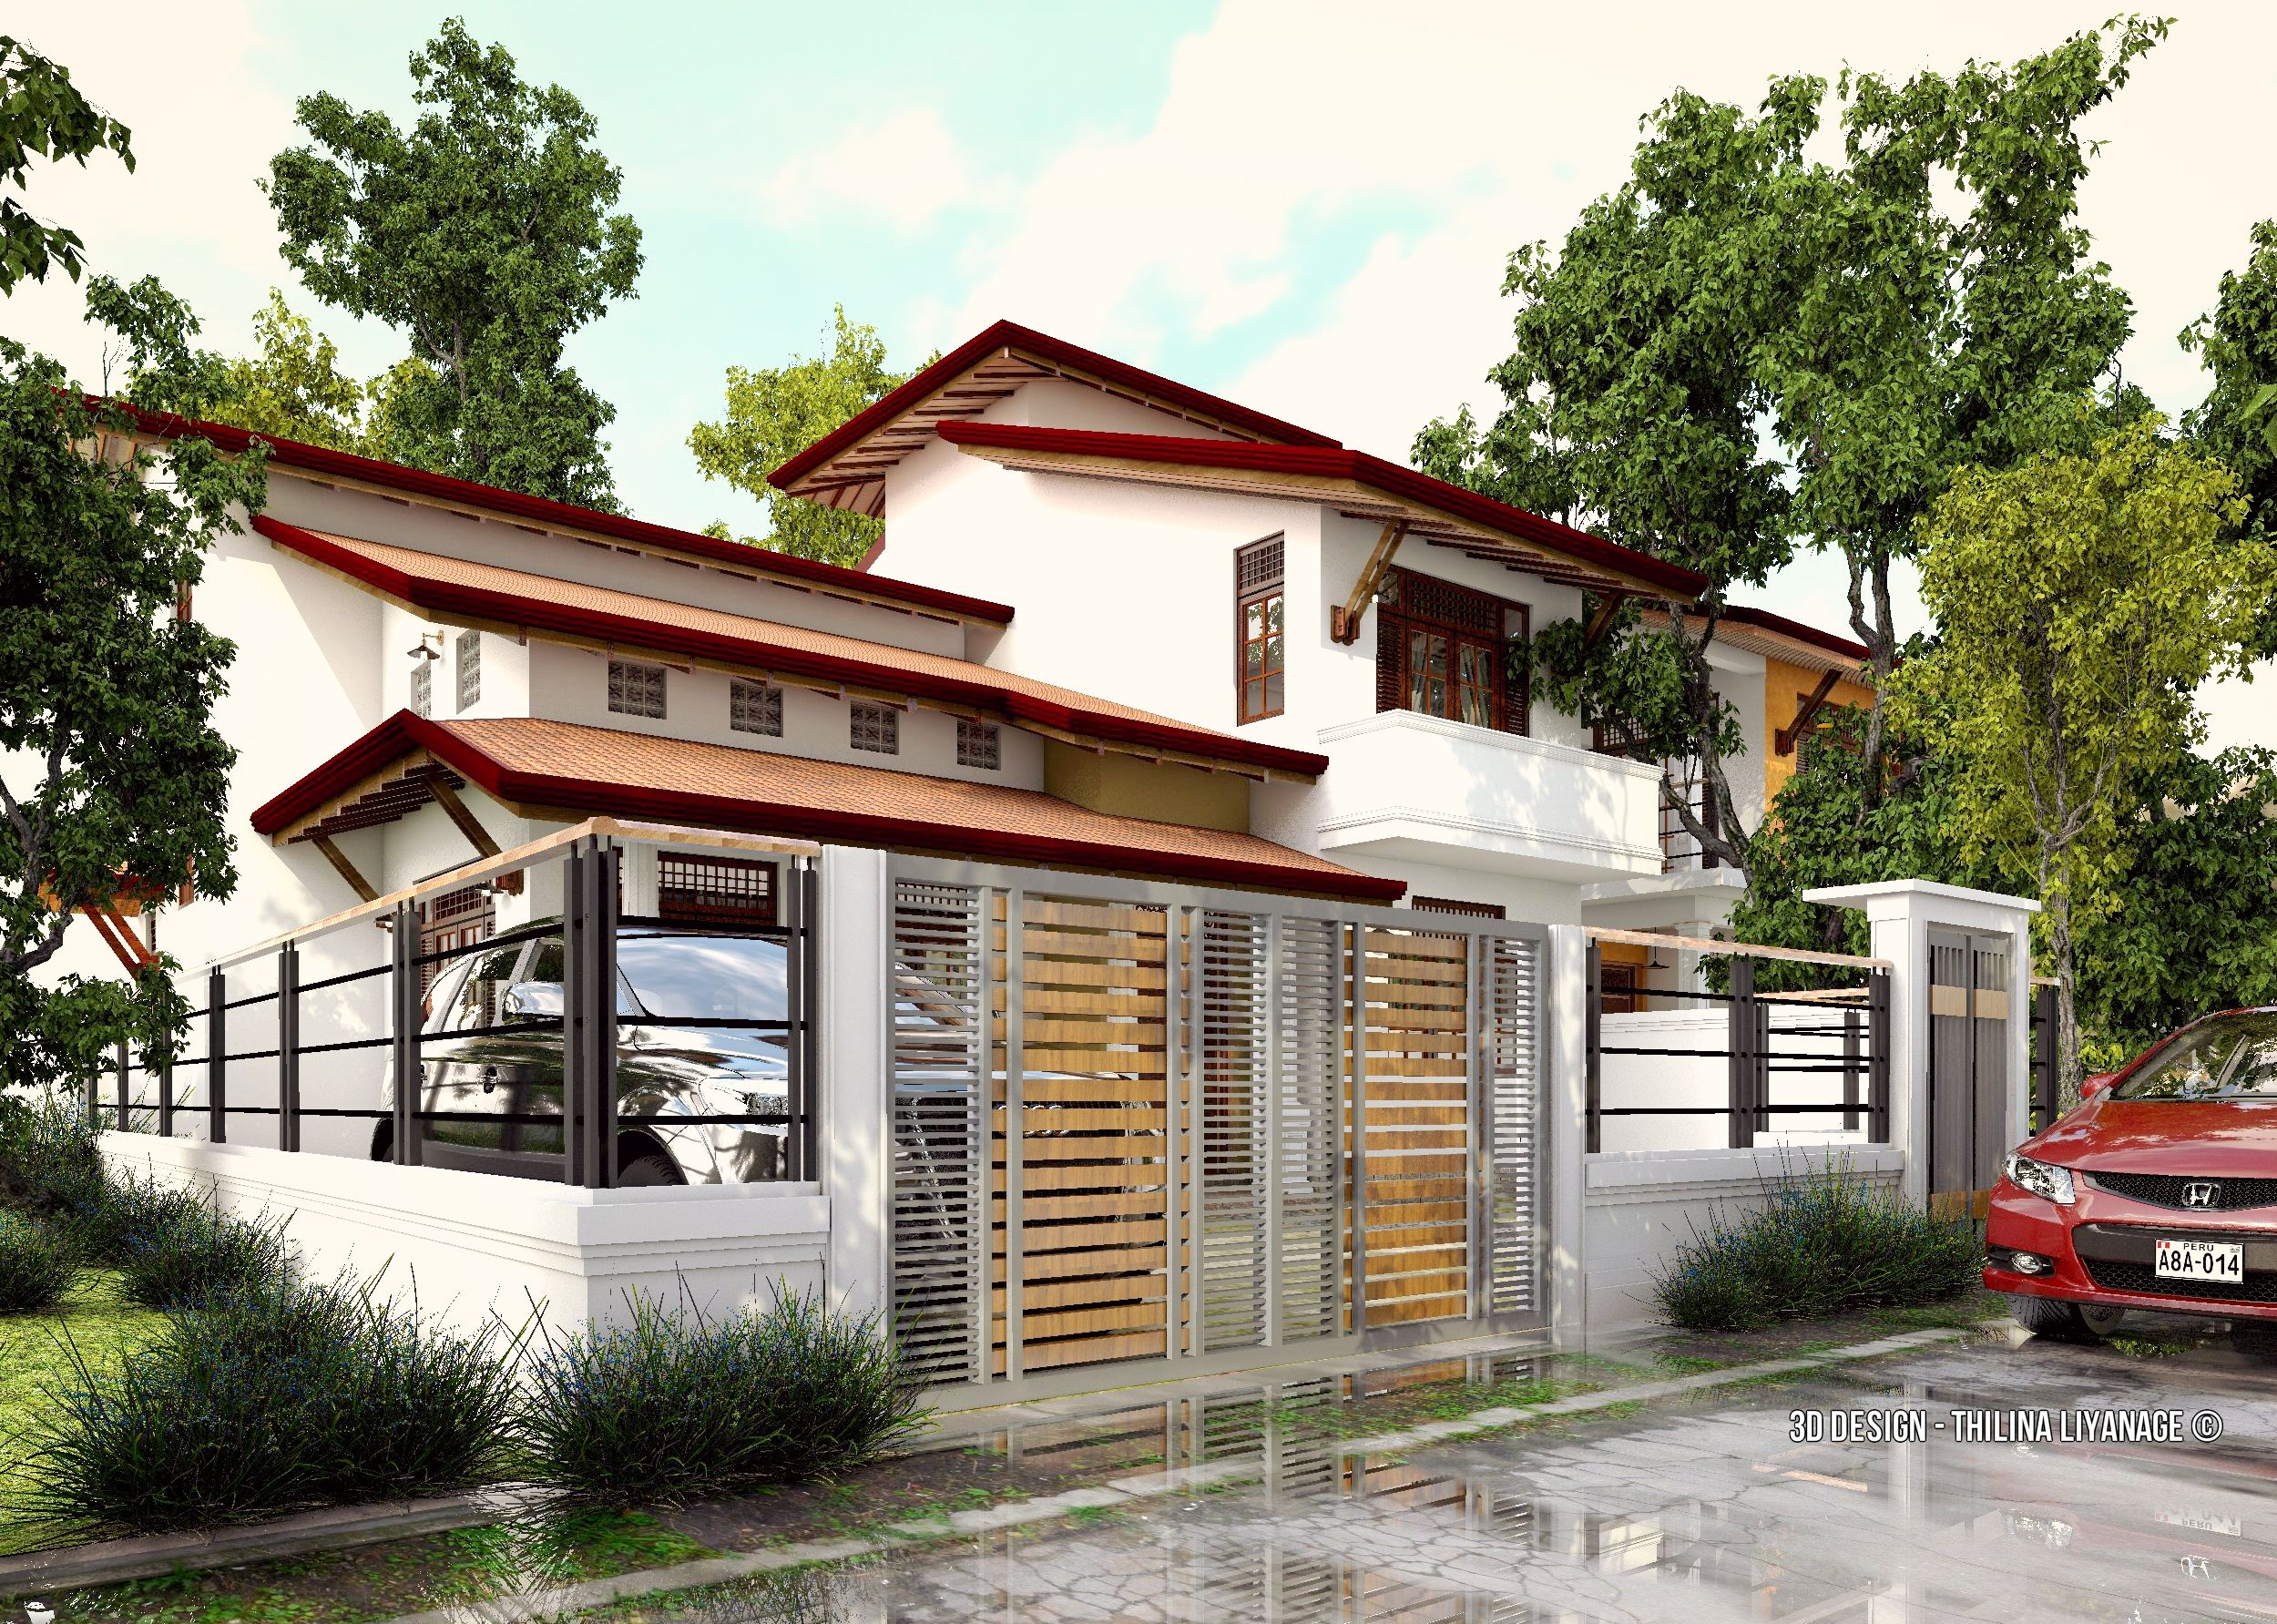 house exterior at kottawa sri lanka 3d scene made with sketchup rh pinterest com